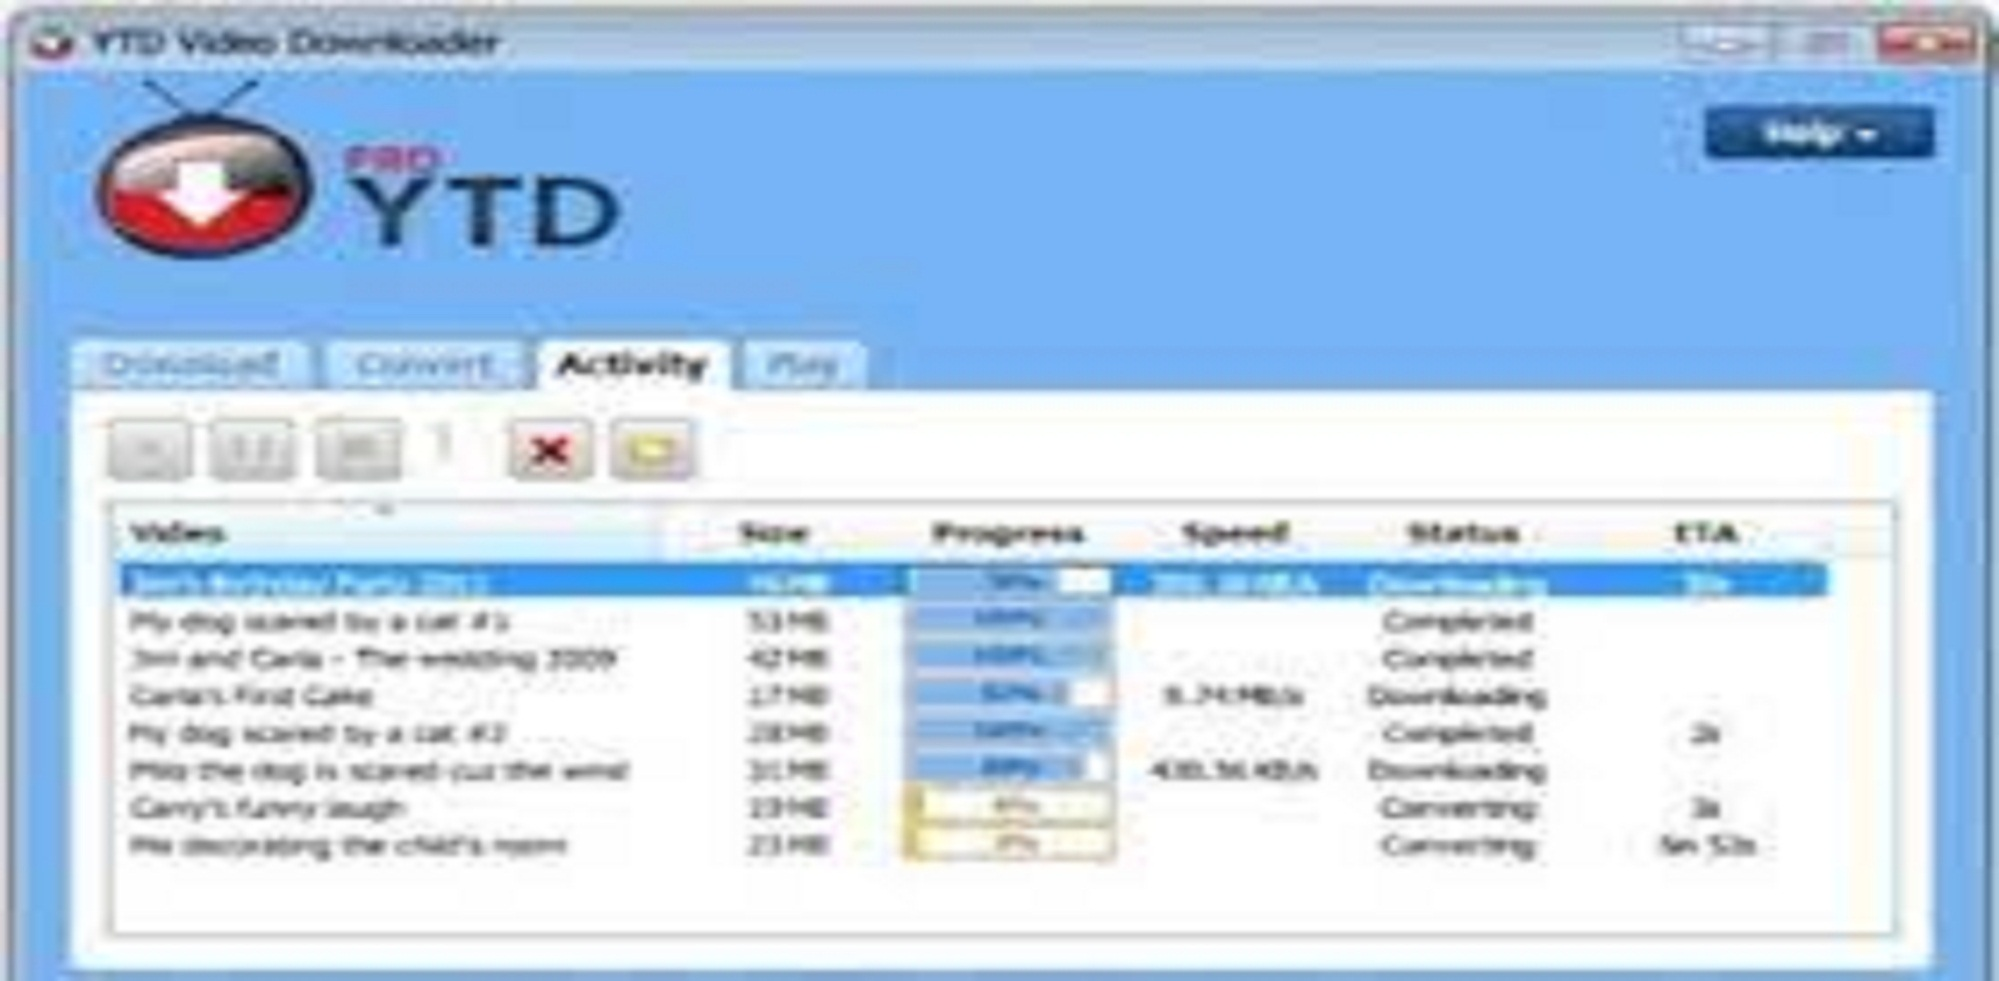 YTD Downloader 7.3.23 Crack With Serial Key Latest 2021